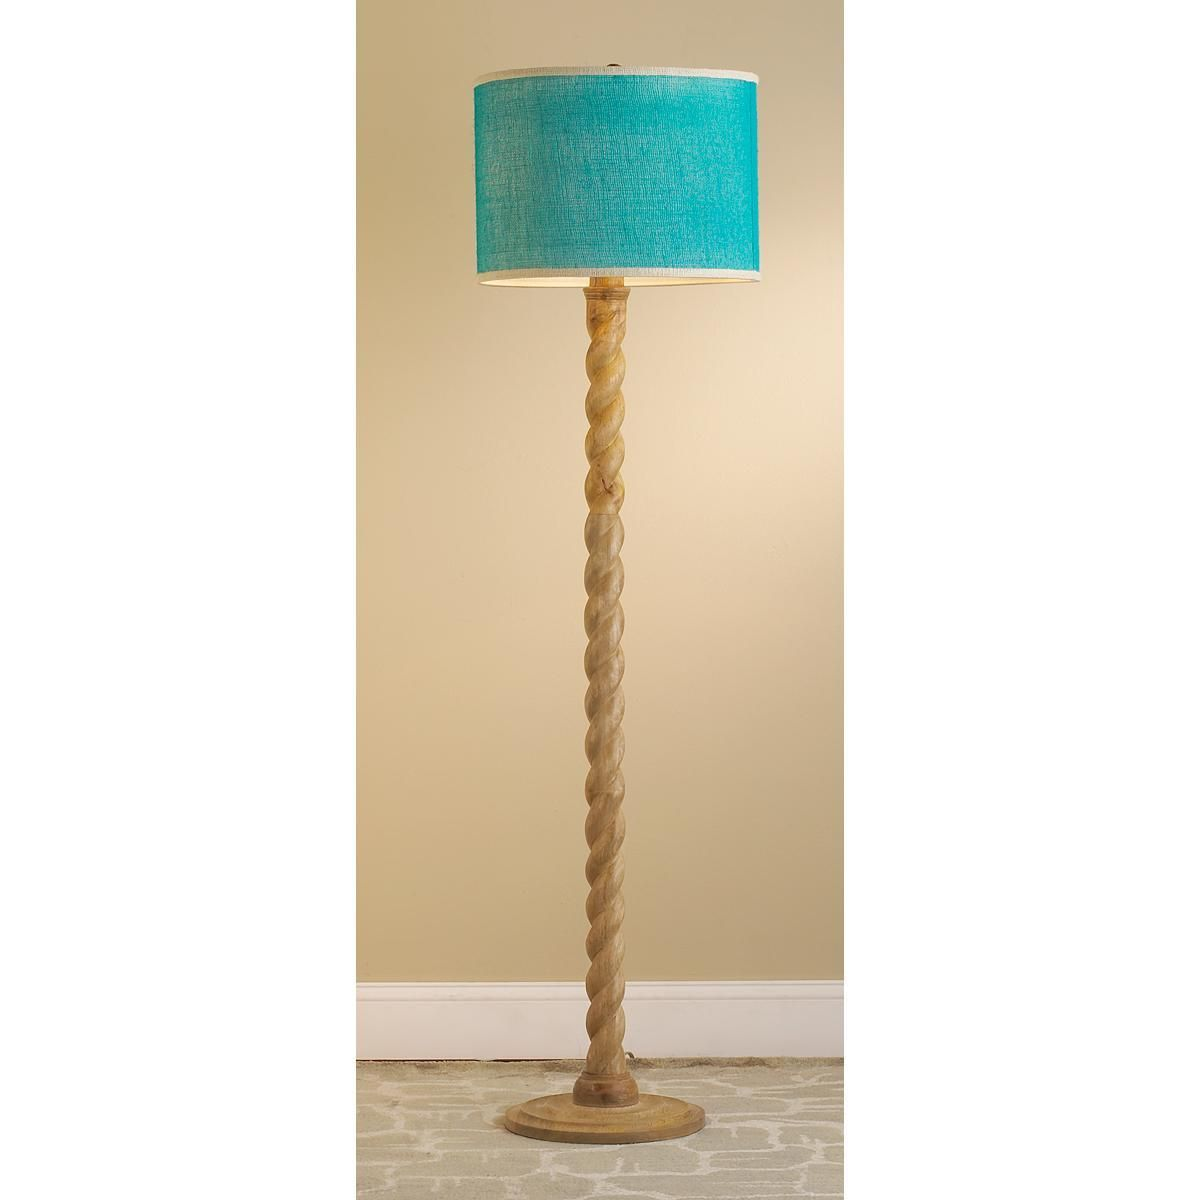 Shades of light twisted column floor lamp base house ideaspretty shades of light twisted column floor lamp base aloadofball Choice Image